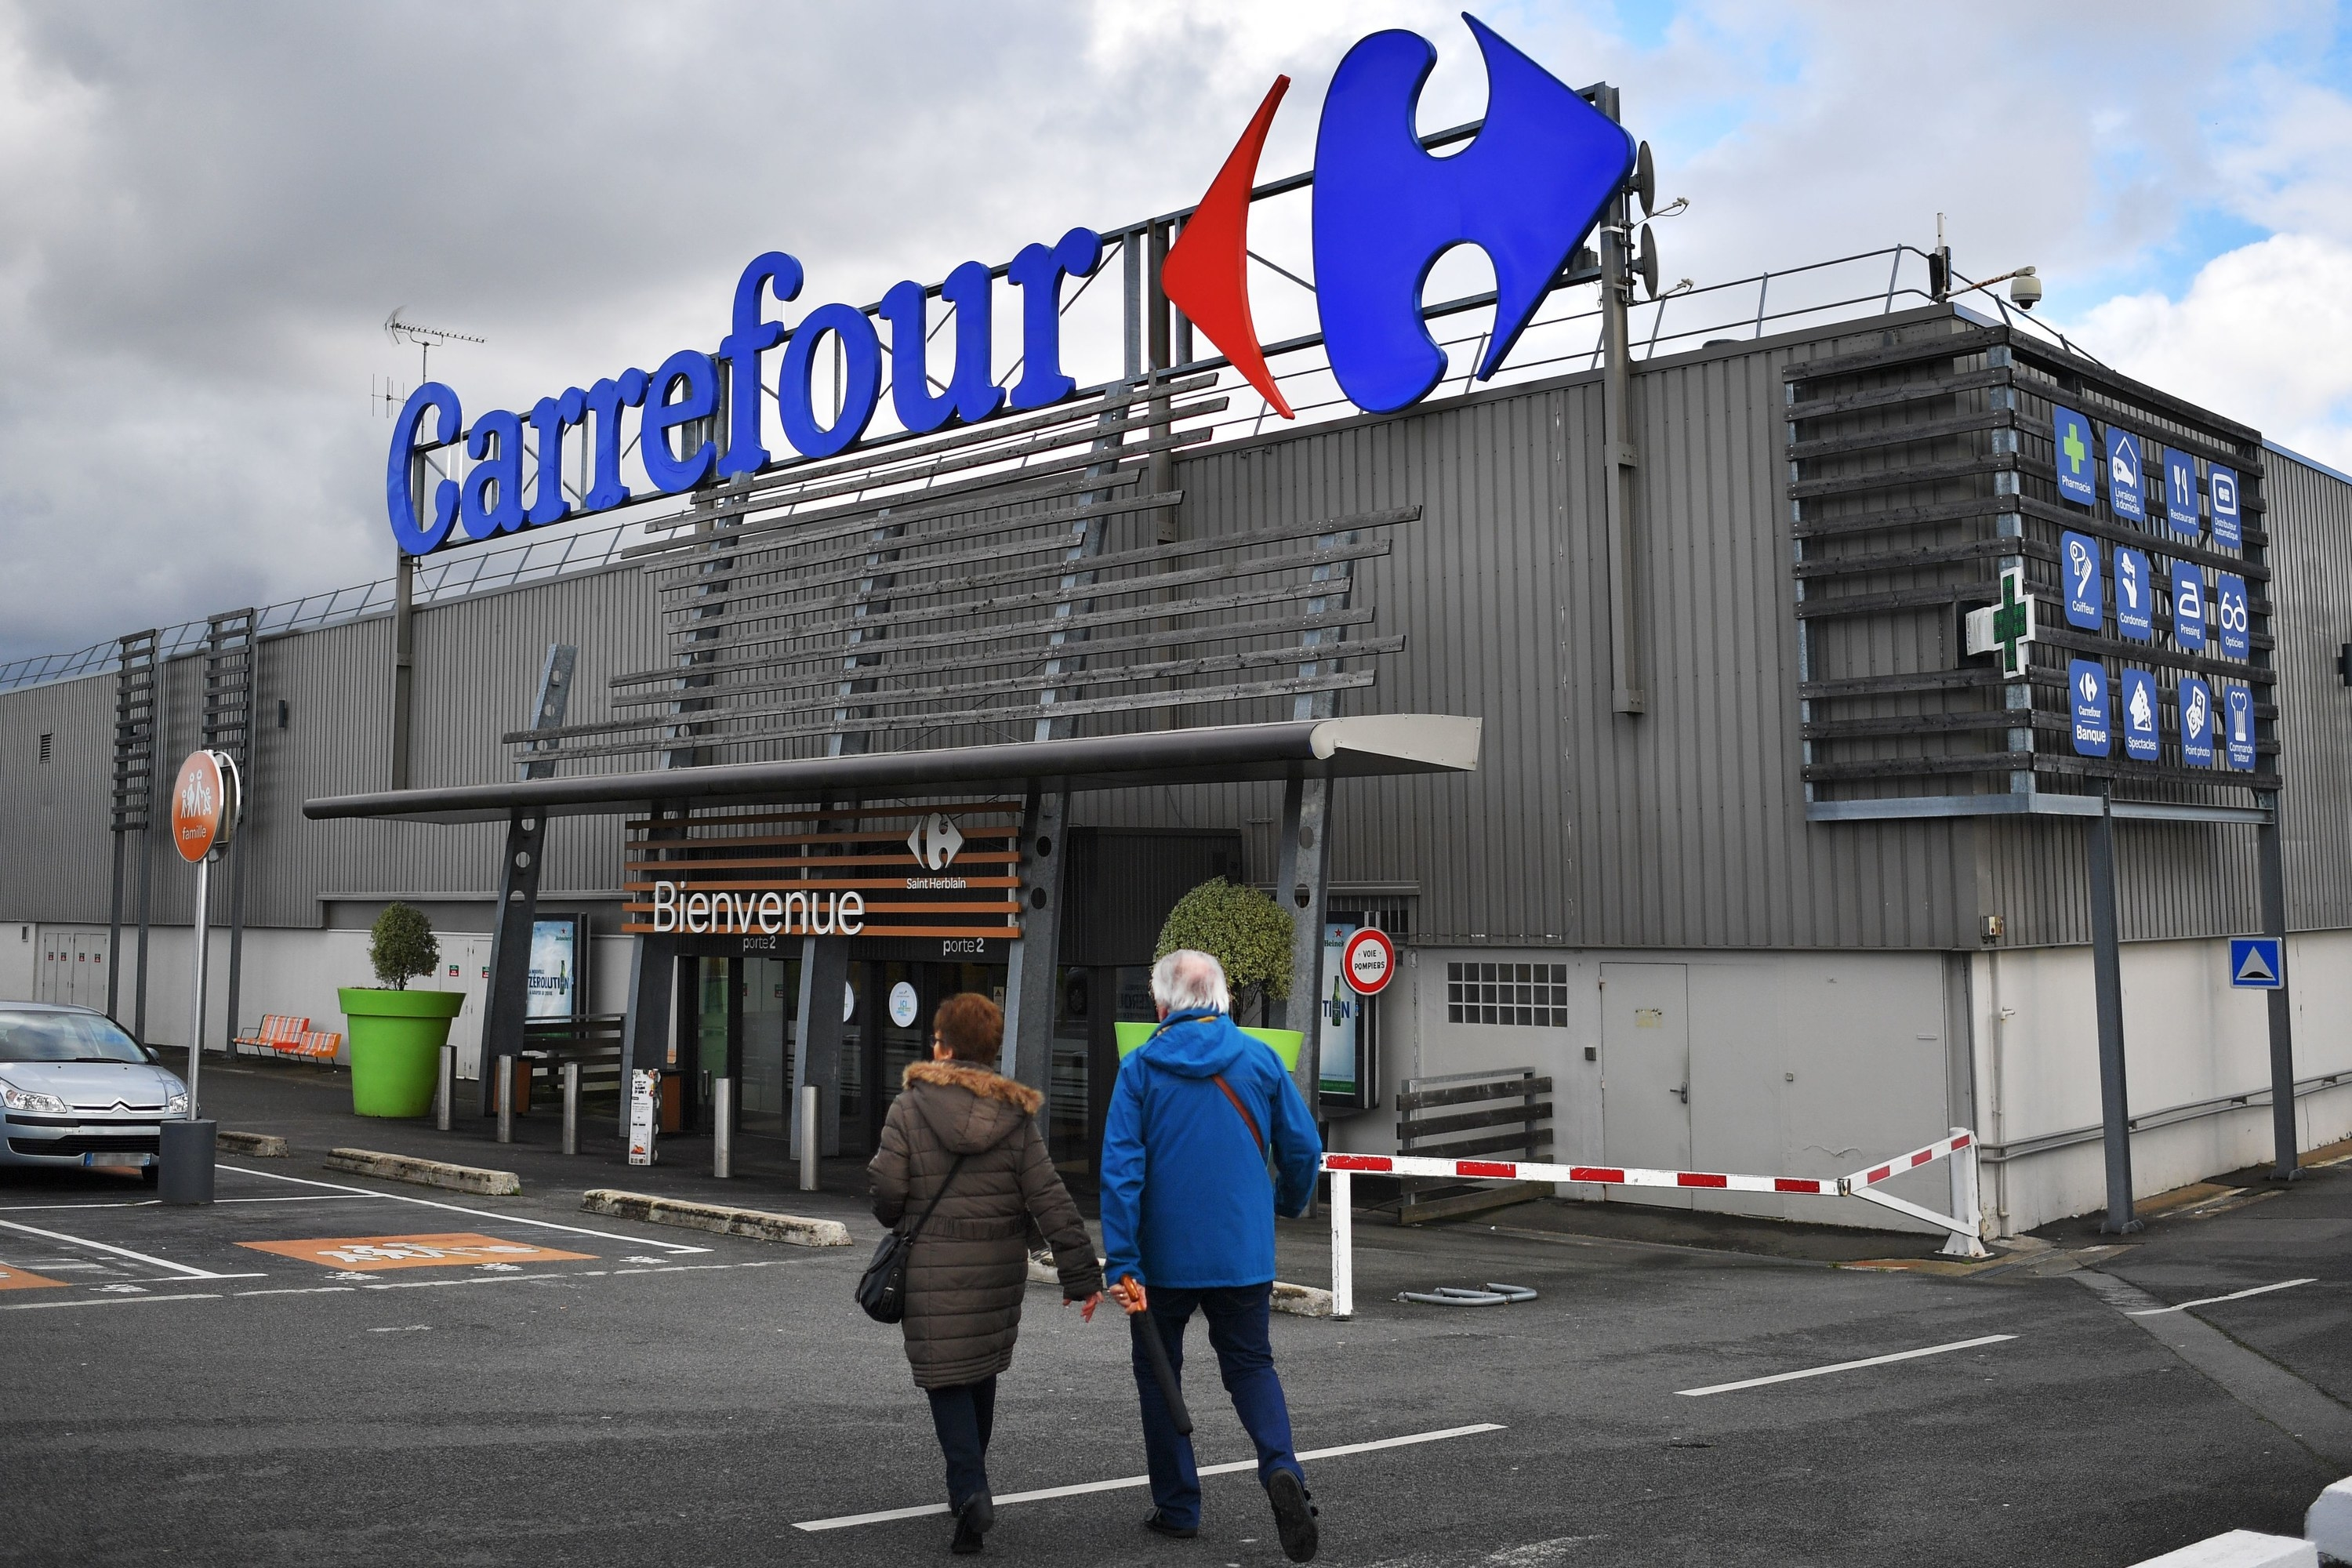 A couple walking into a Carrefour supermarket